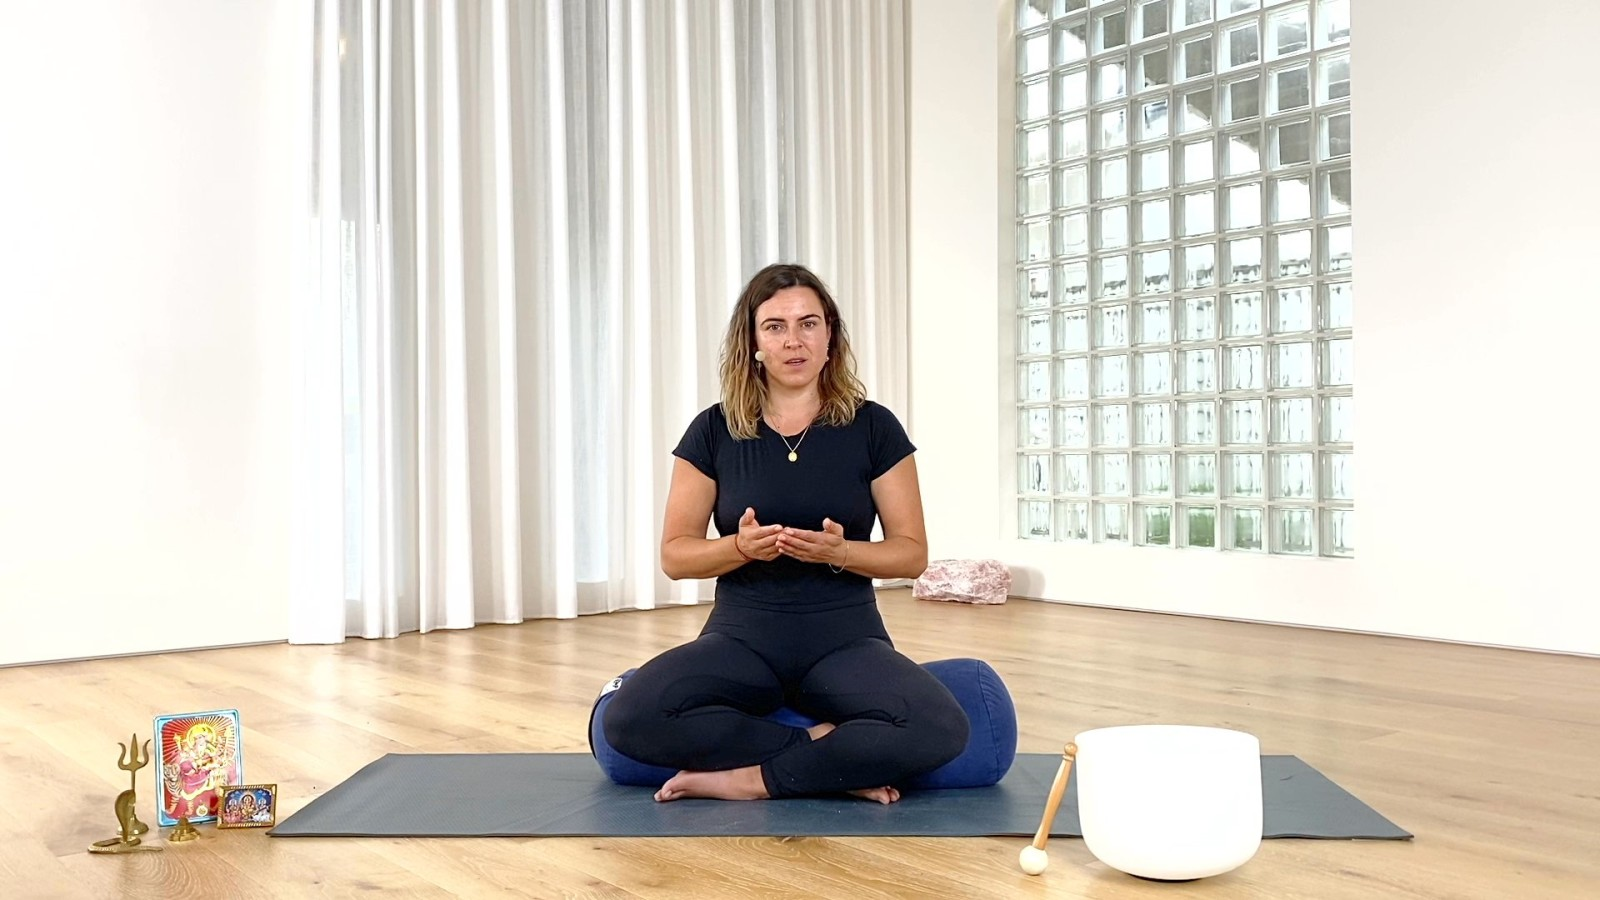 Yoga is your Natural State with Irene Ais